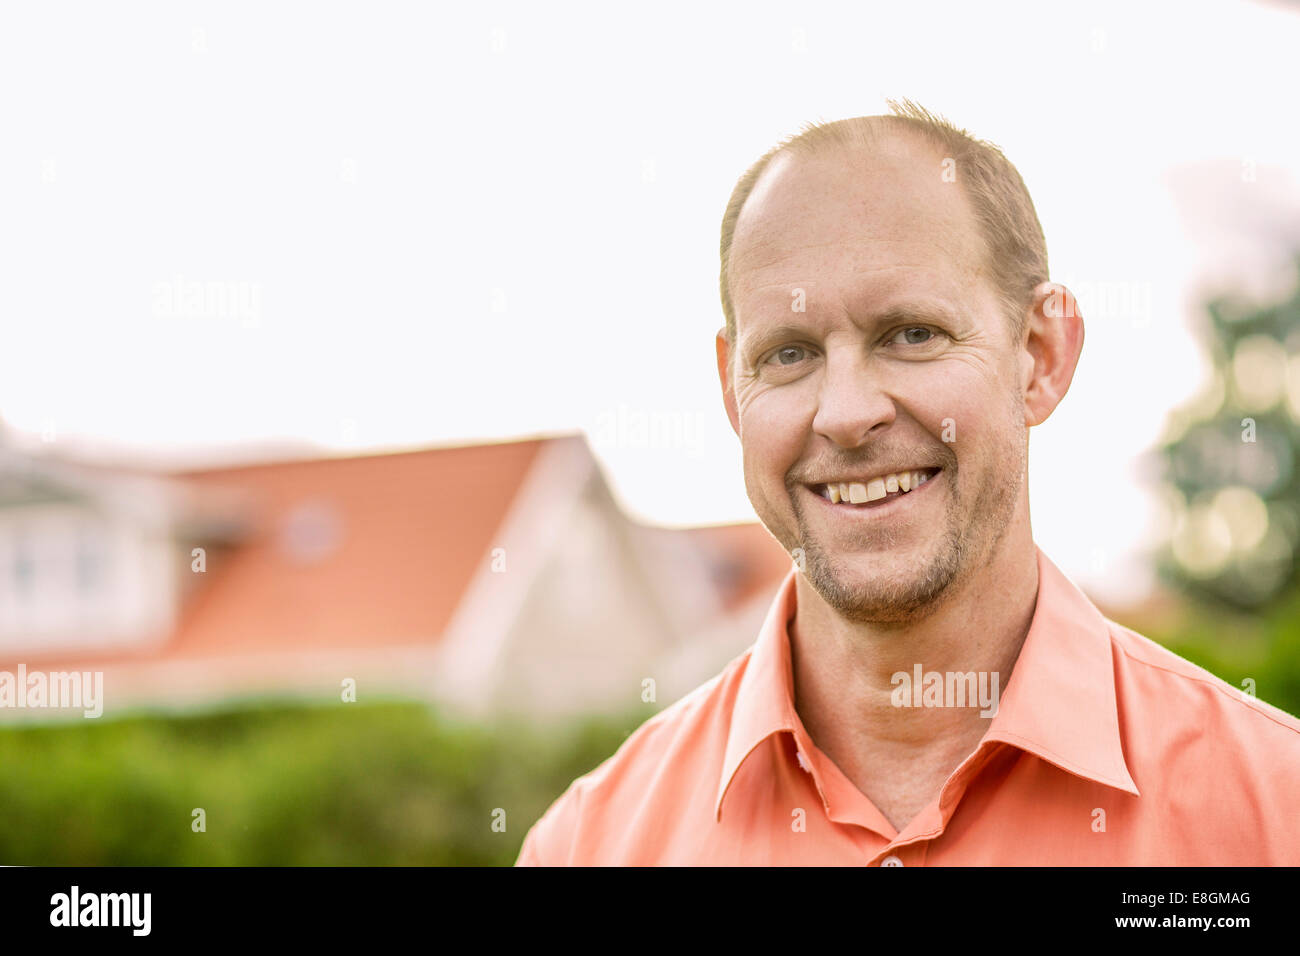 Portrait of mature man smiling in yard - Stock Image